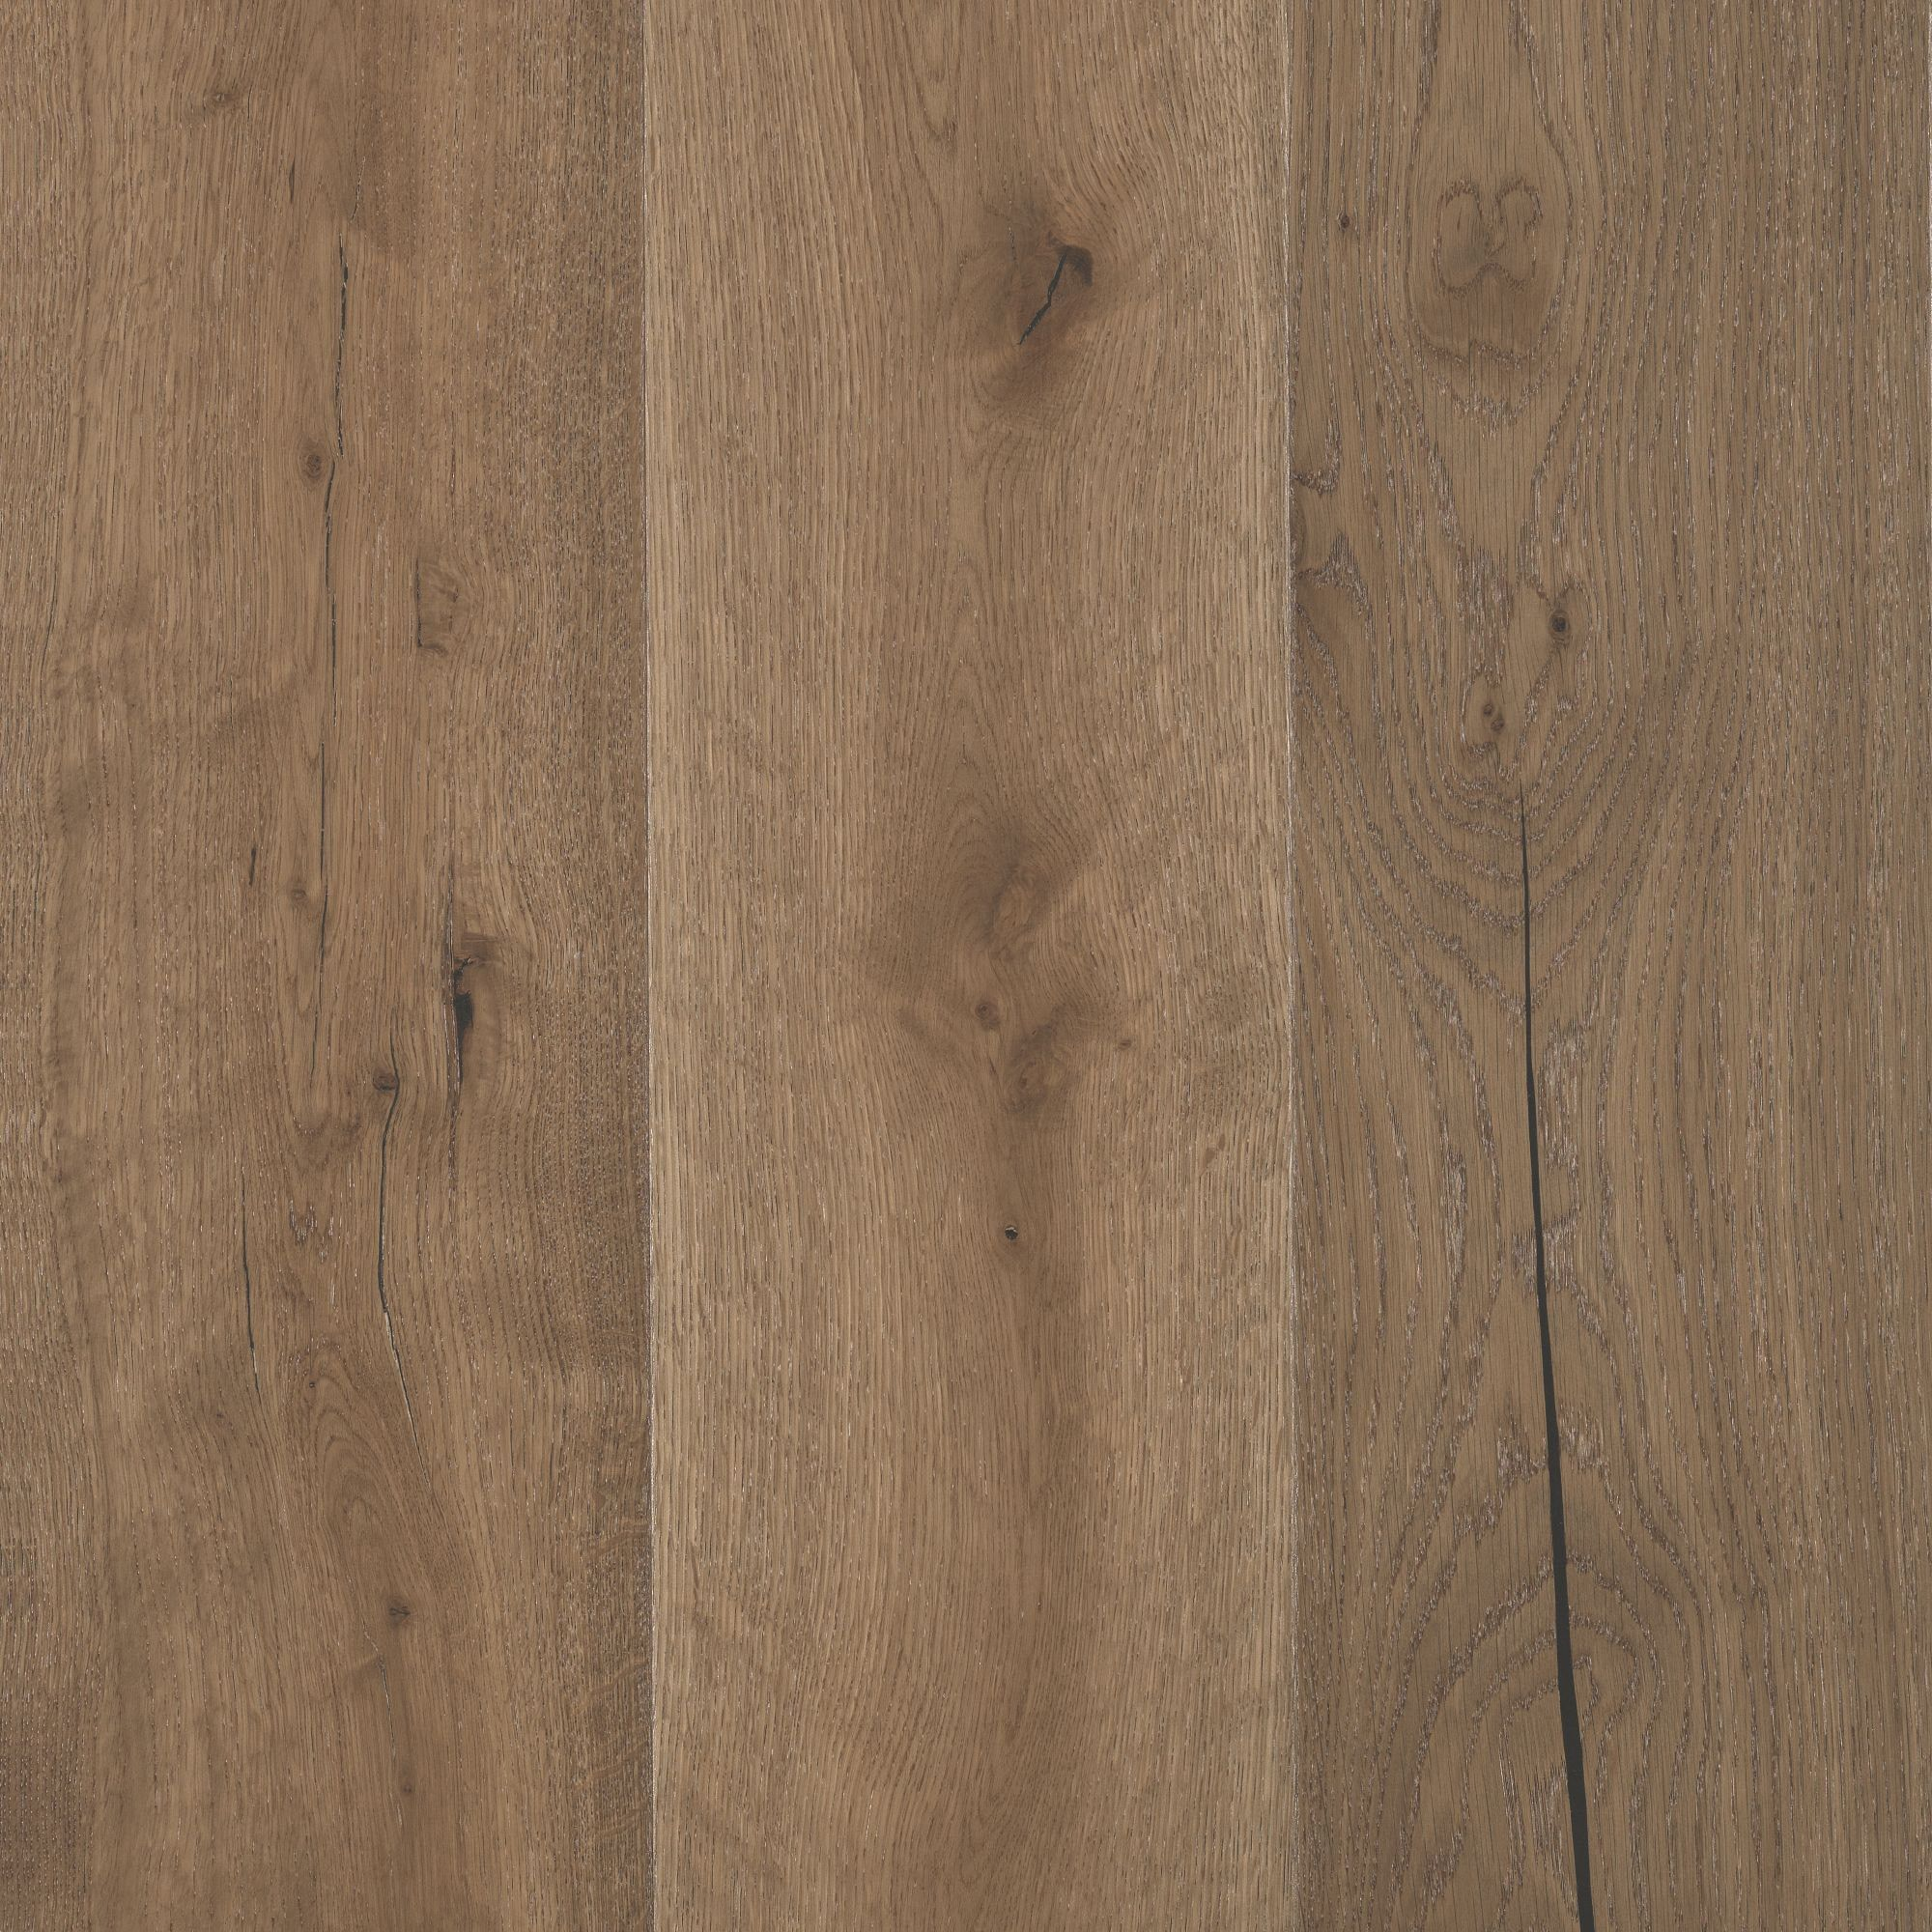 Mohawk Flooring Engineered Hardwood Arbordale Collection With Images Oak Engineered Hardwood Engineered Hardwood